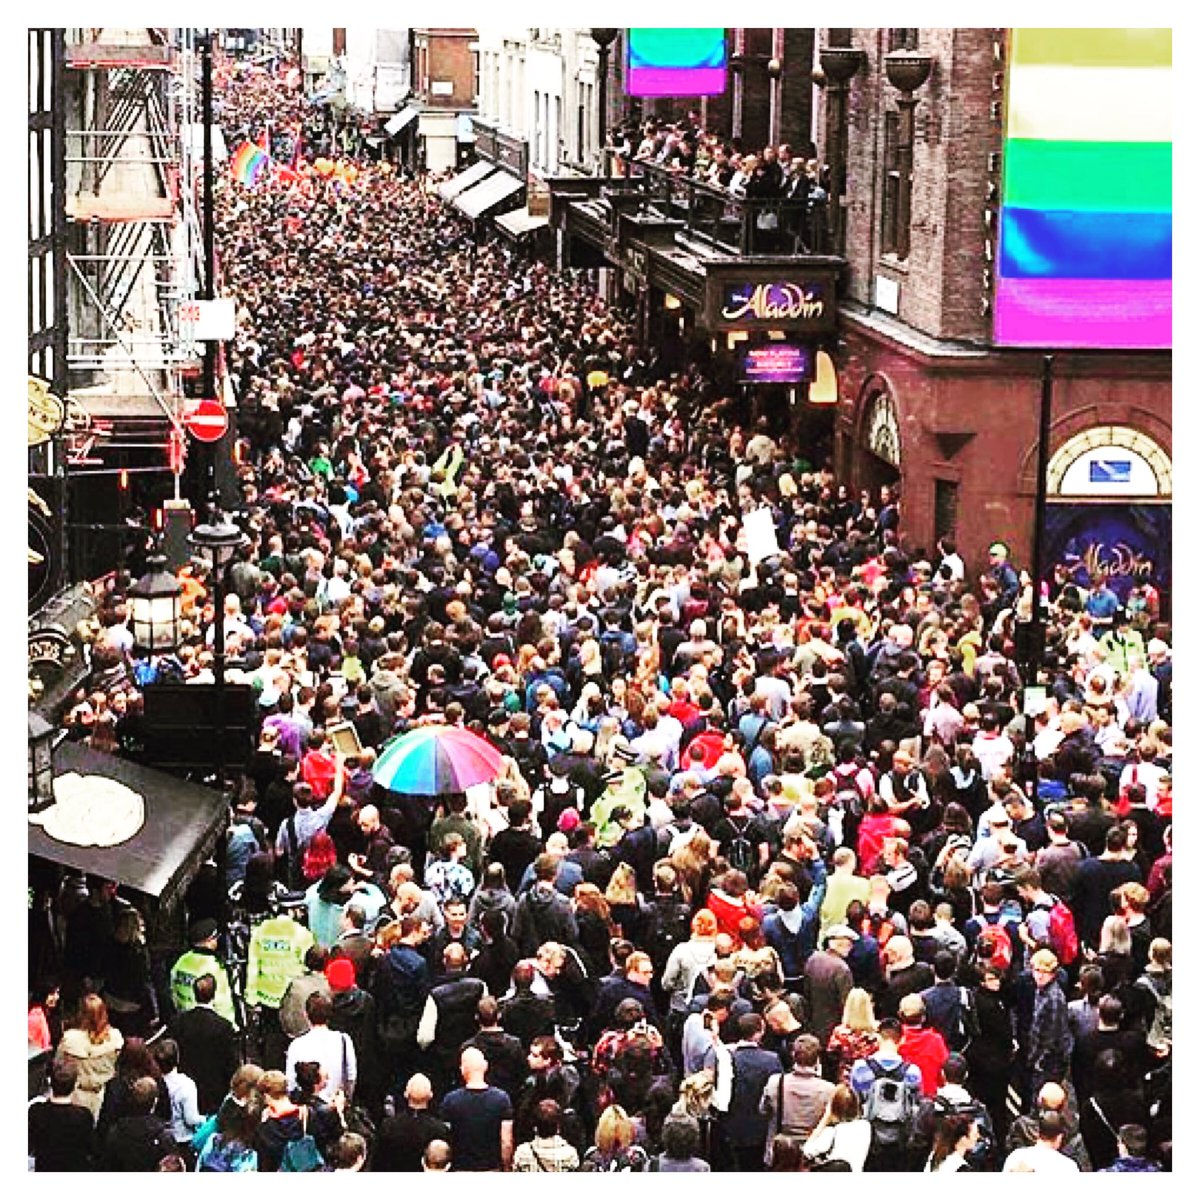 #soho in support tonight of #orlando https://t.co/wDpPEHEWQh